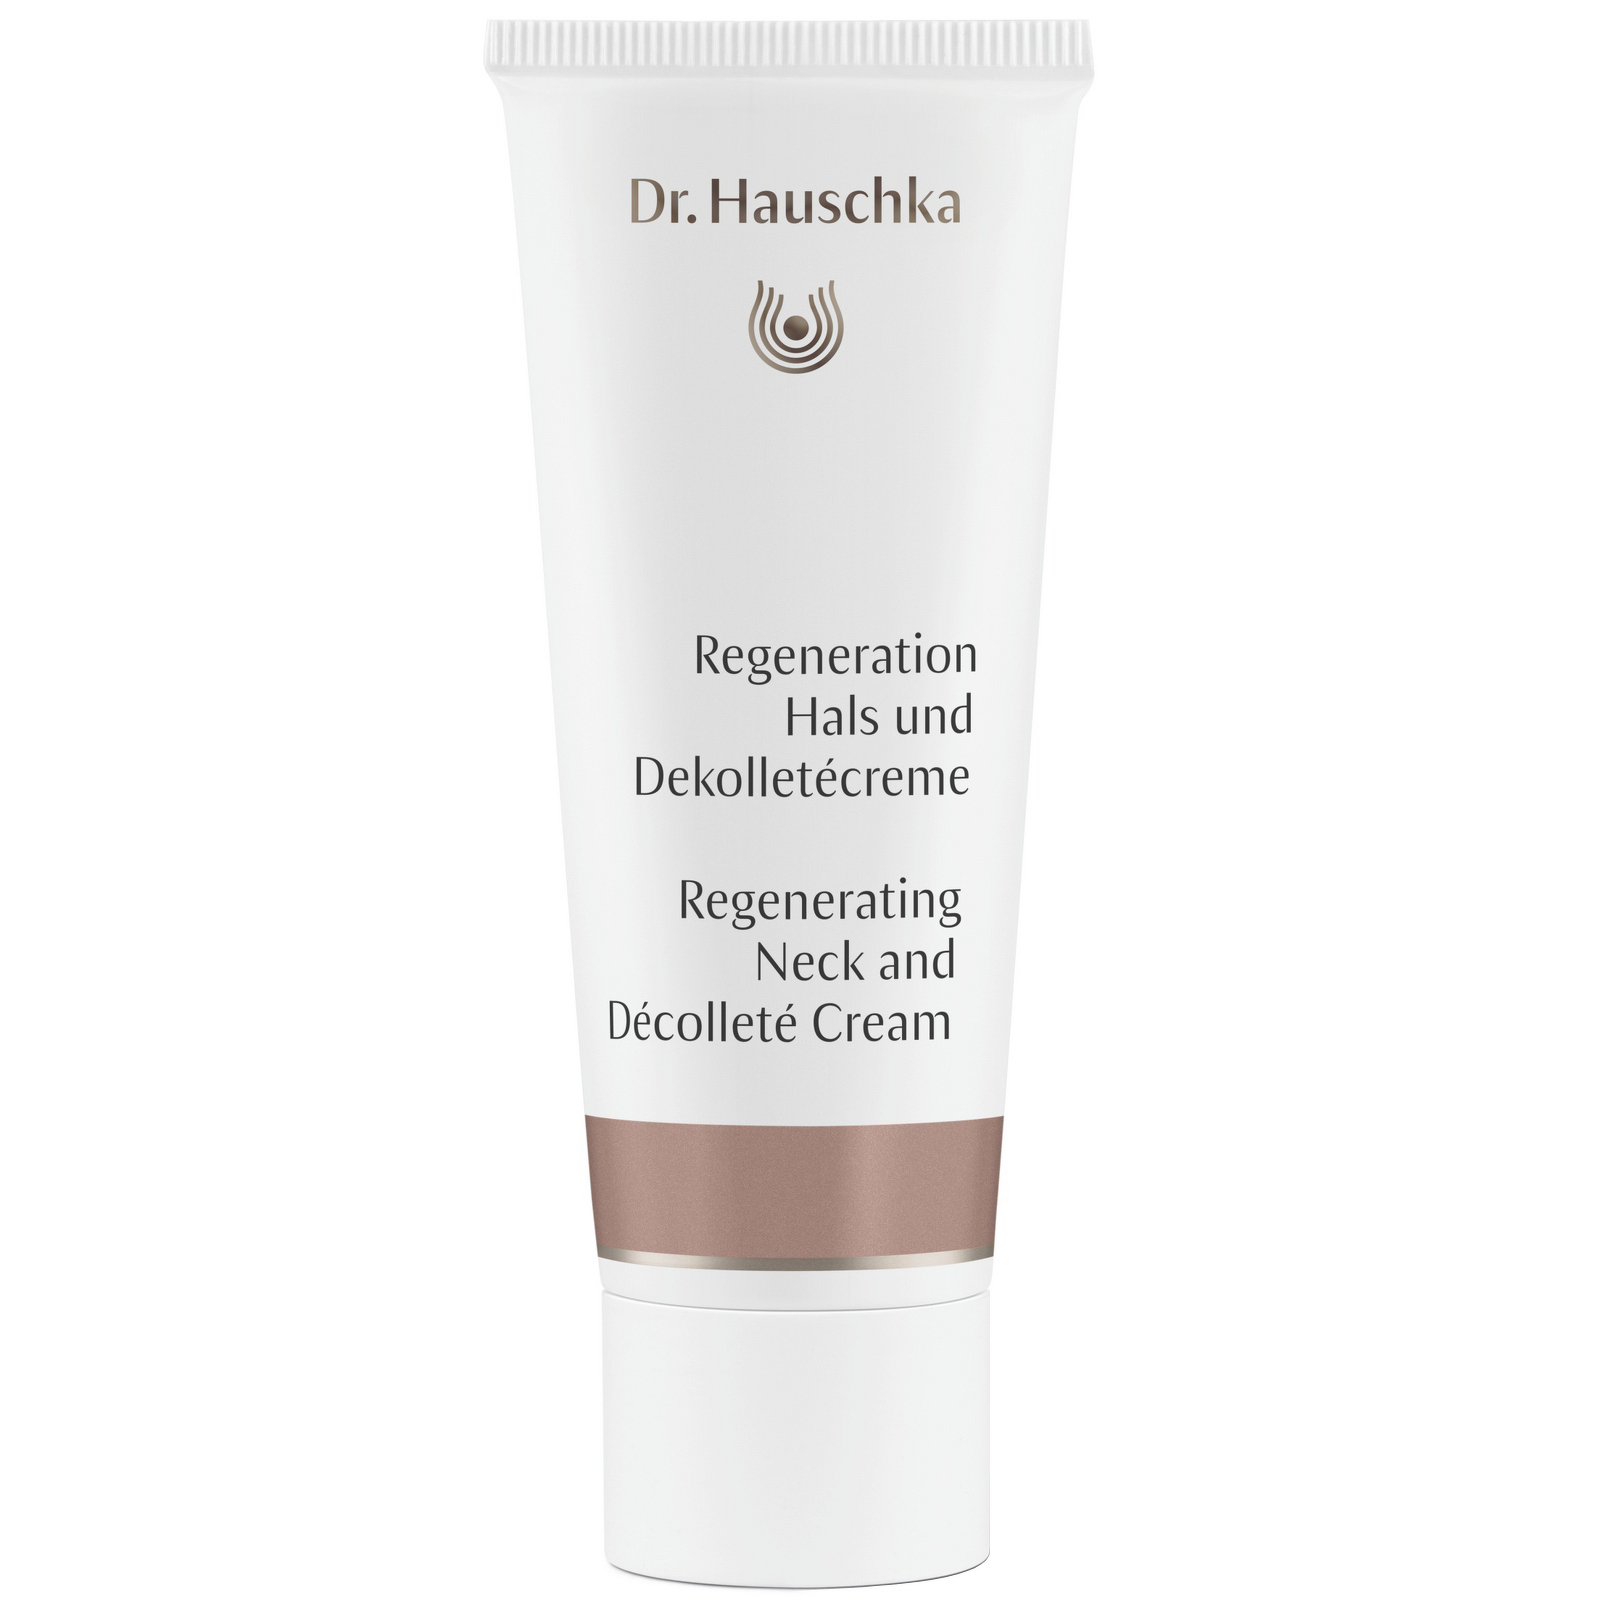 Dr. Hauschka Face Care Regenerating Neck and Decollette Cream 40ml